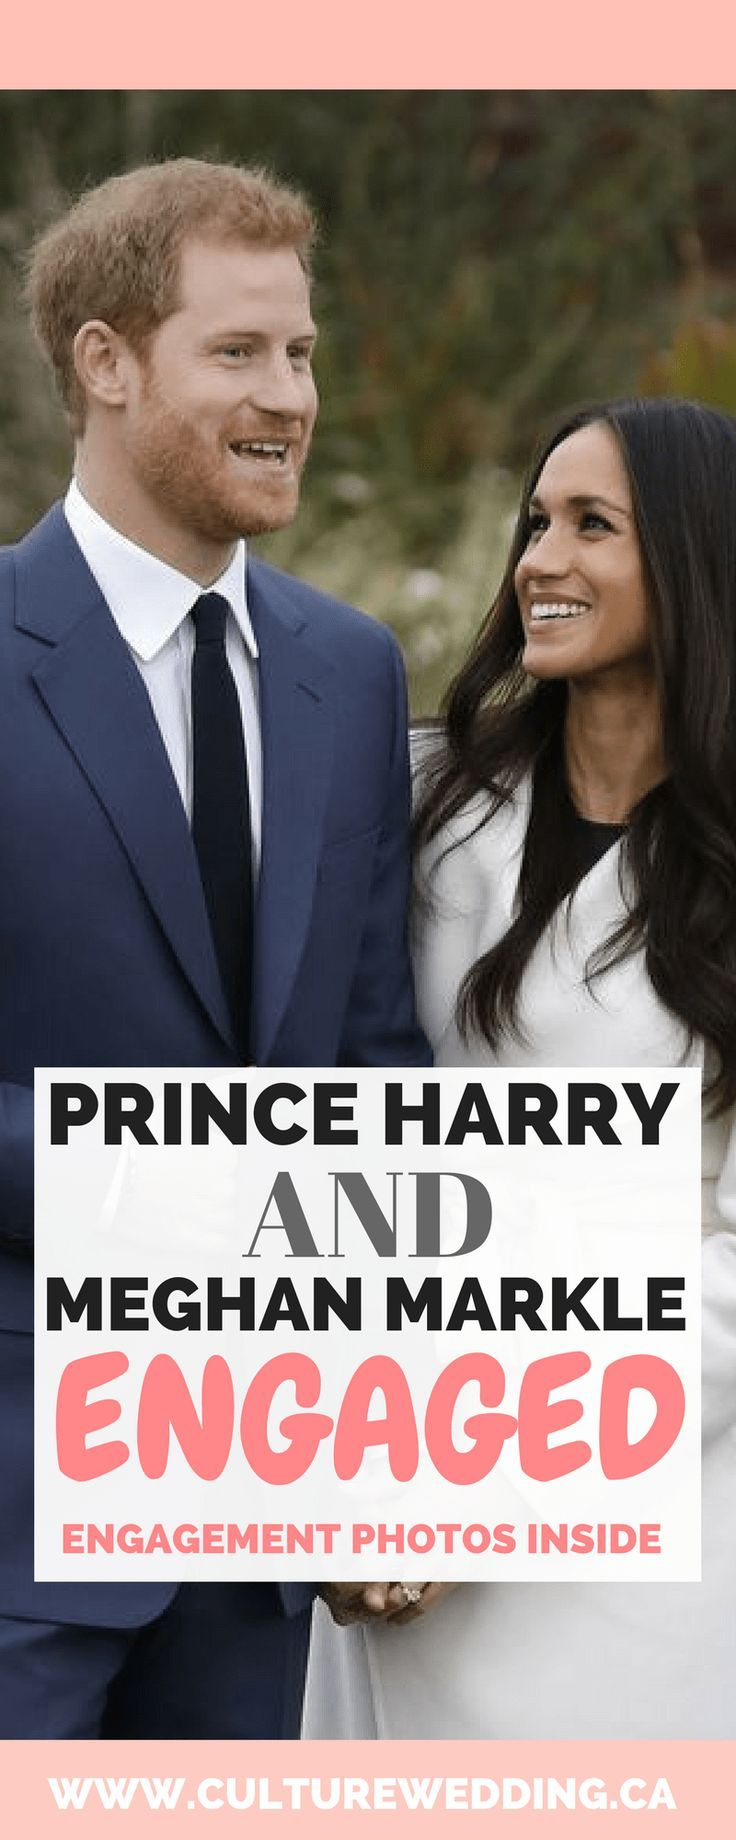 Prince Harry and Meghan Markle. Prince Harry and Meghan Markle engaged. prince harry and meghan markle engagement. Prince Harry is officially engaged to Toronto based actress Meghan Markle. Check out their Engagement Photo shoot and first TV Appearance. The Royal engagement of the year. Prince Harry has found a bride. Prince Harry proposed to his Actress Girlfriend Meghan Mackle. #Princeharry #HarryandMeghan #RoyalEngagement ged